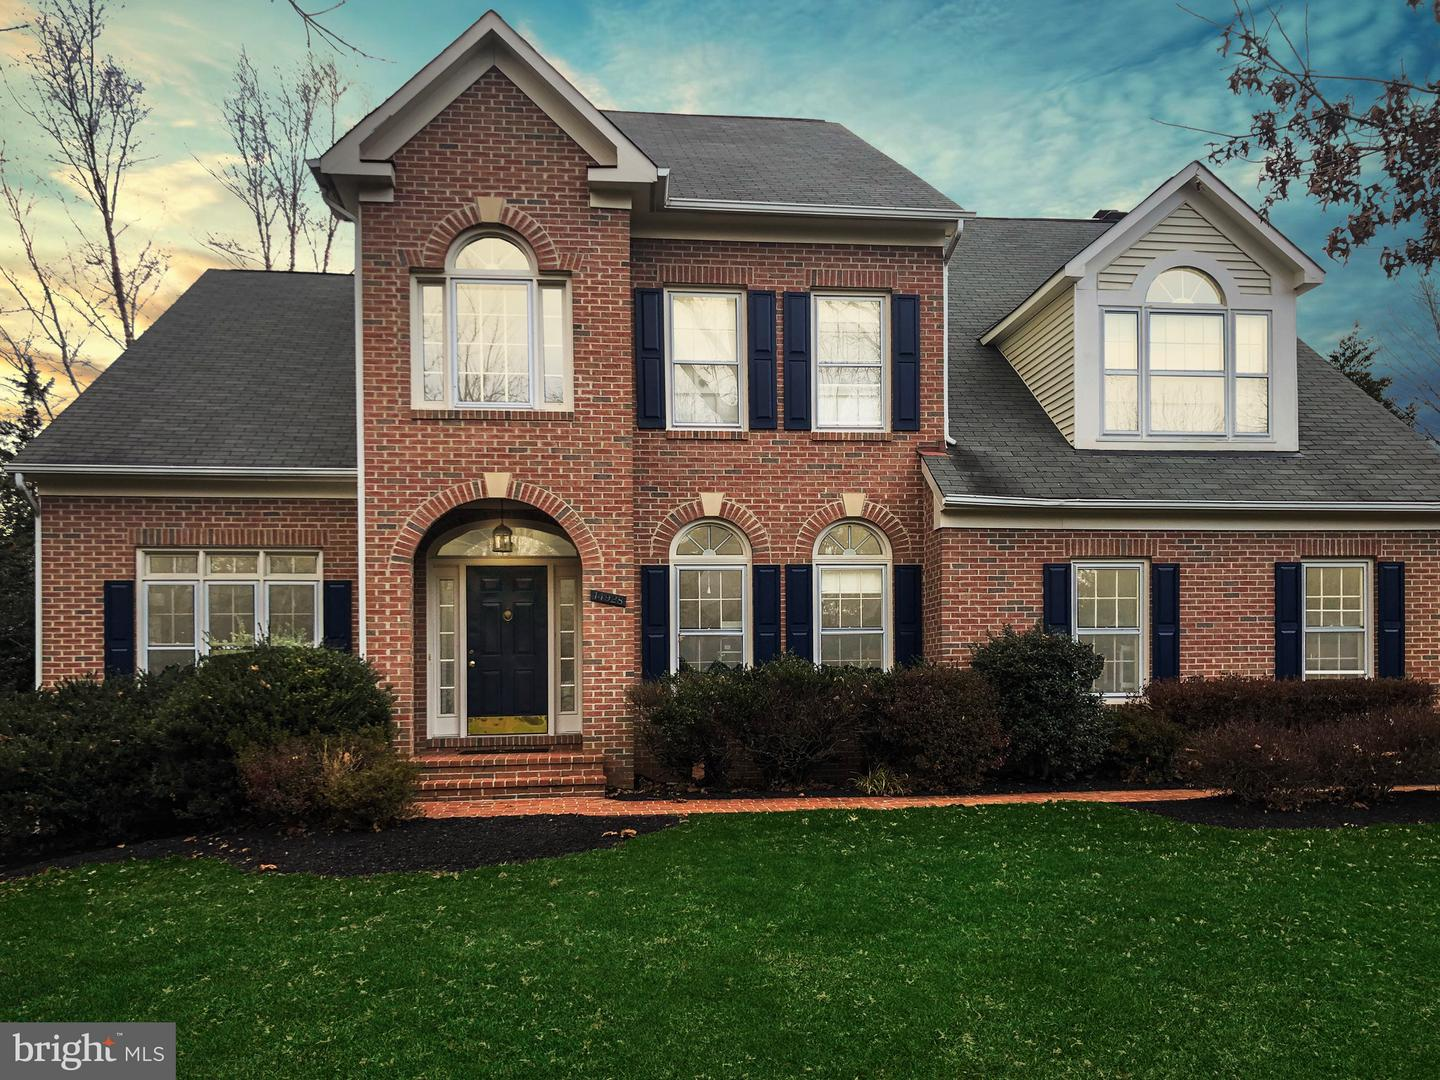 Additional photo for property listing at 14928 Cub Run Park Dr 14928 Cub Run Park Dr Centreville, Virginia 20120 United States